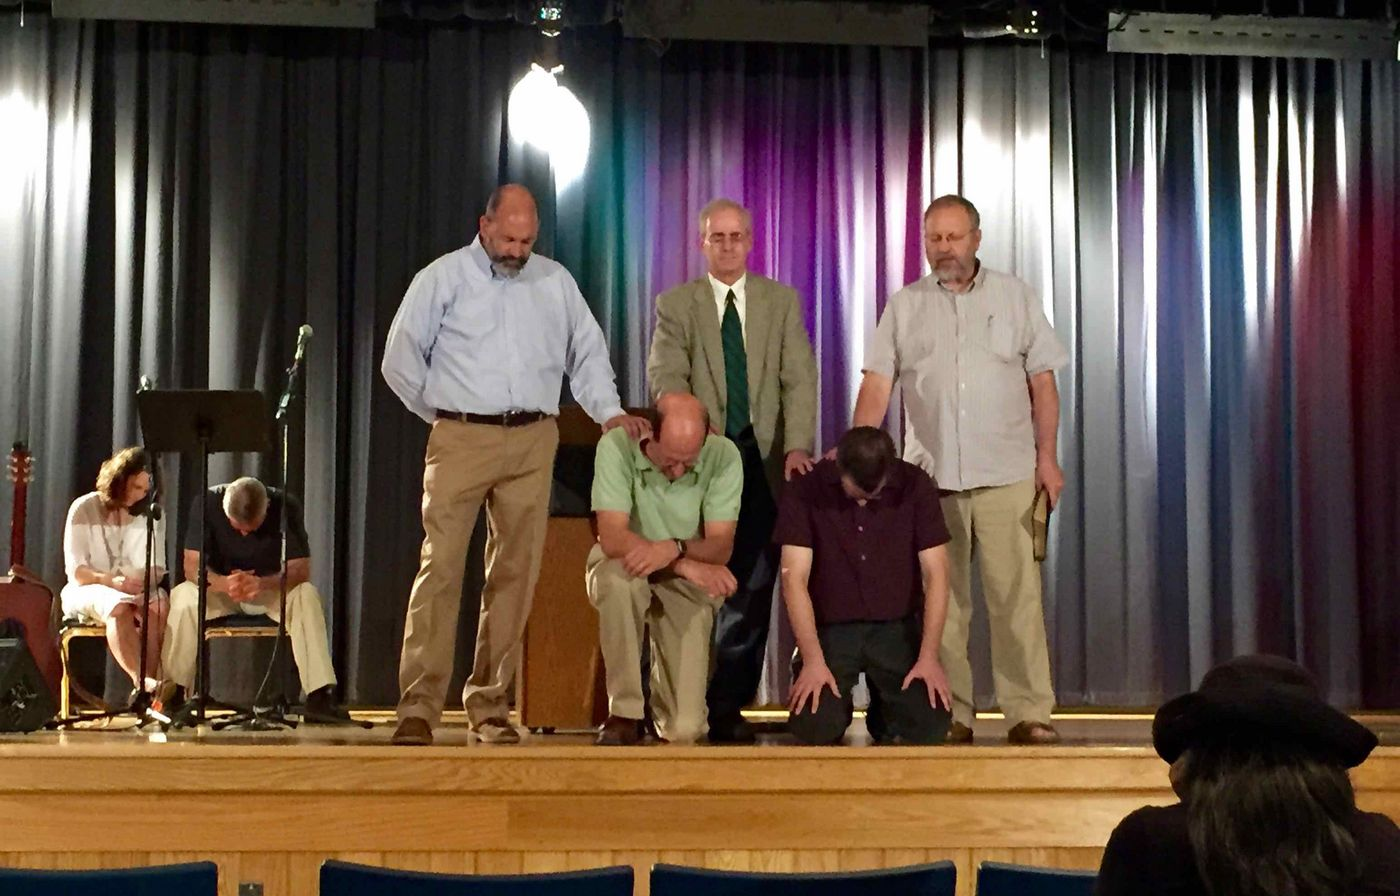 Appointing Deacons at WBC